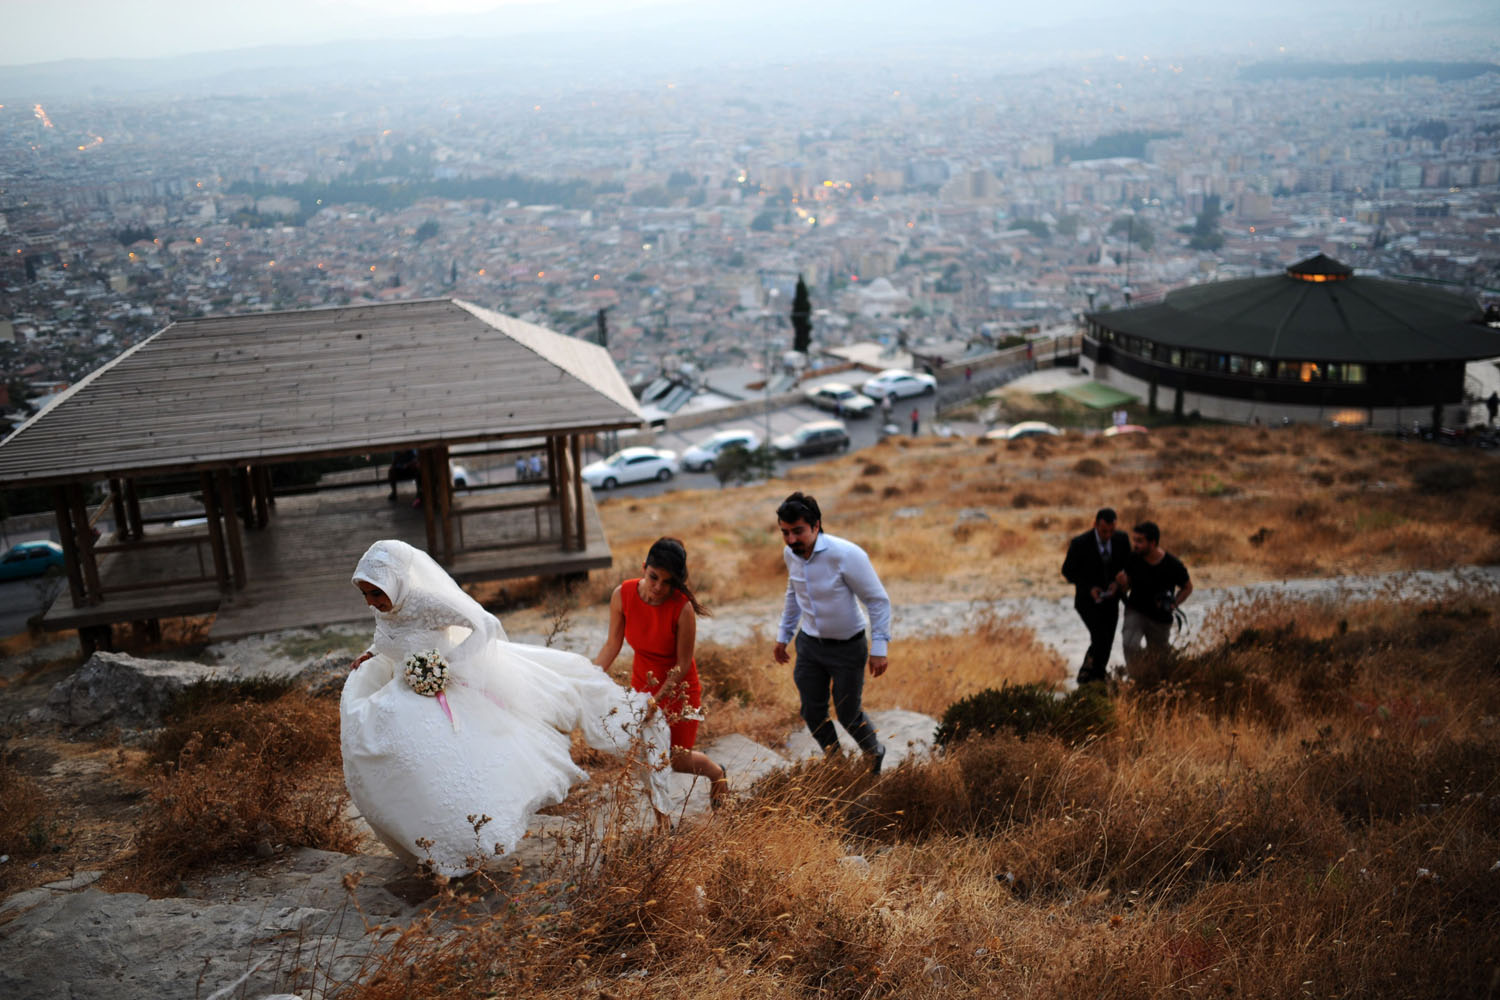 A newly married couple walks up a hill with a view of the city of Antakya, Turkey, Aug. 29, 2013.